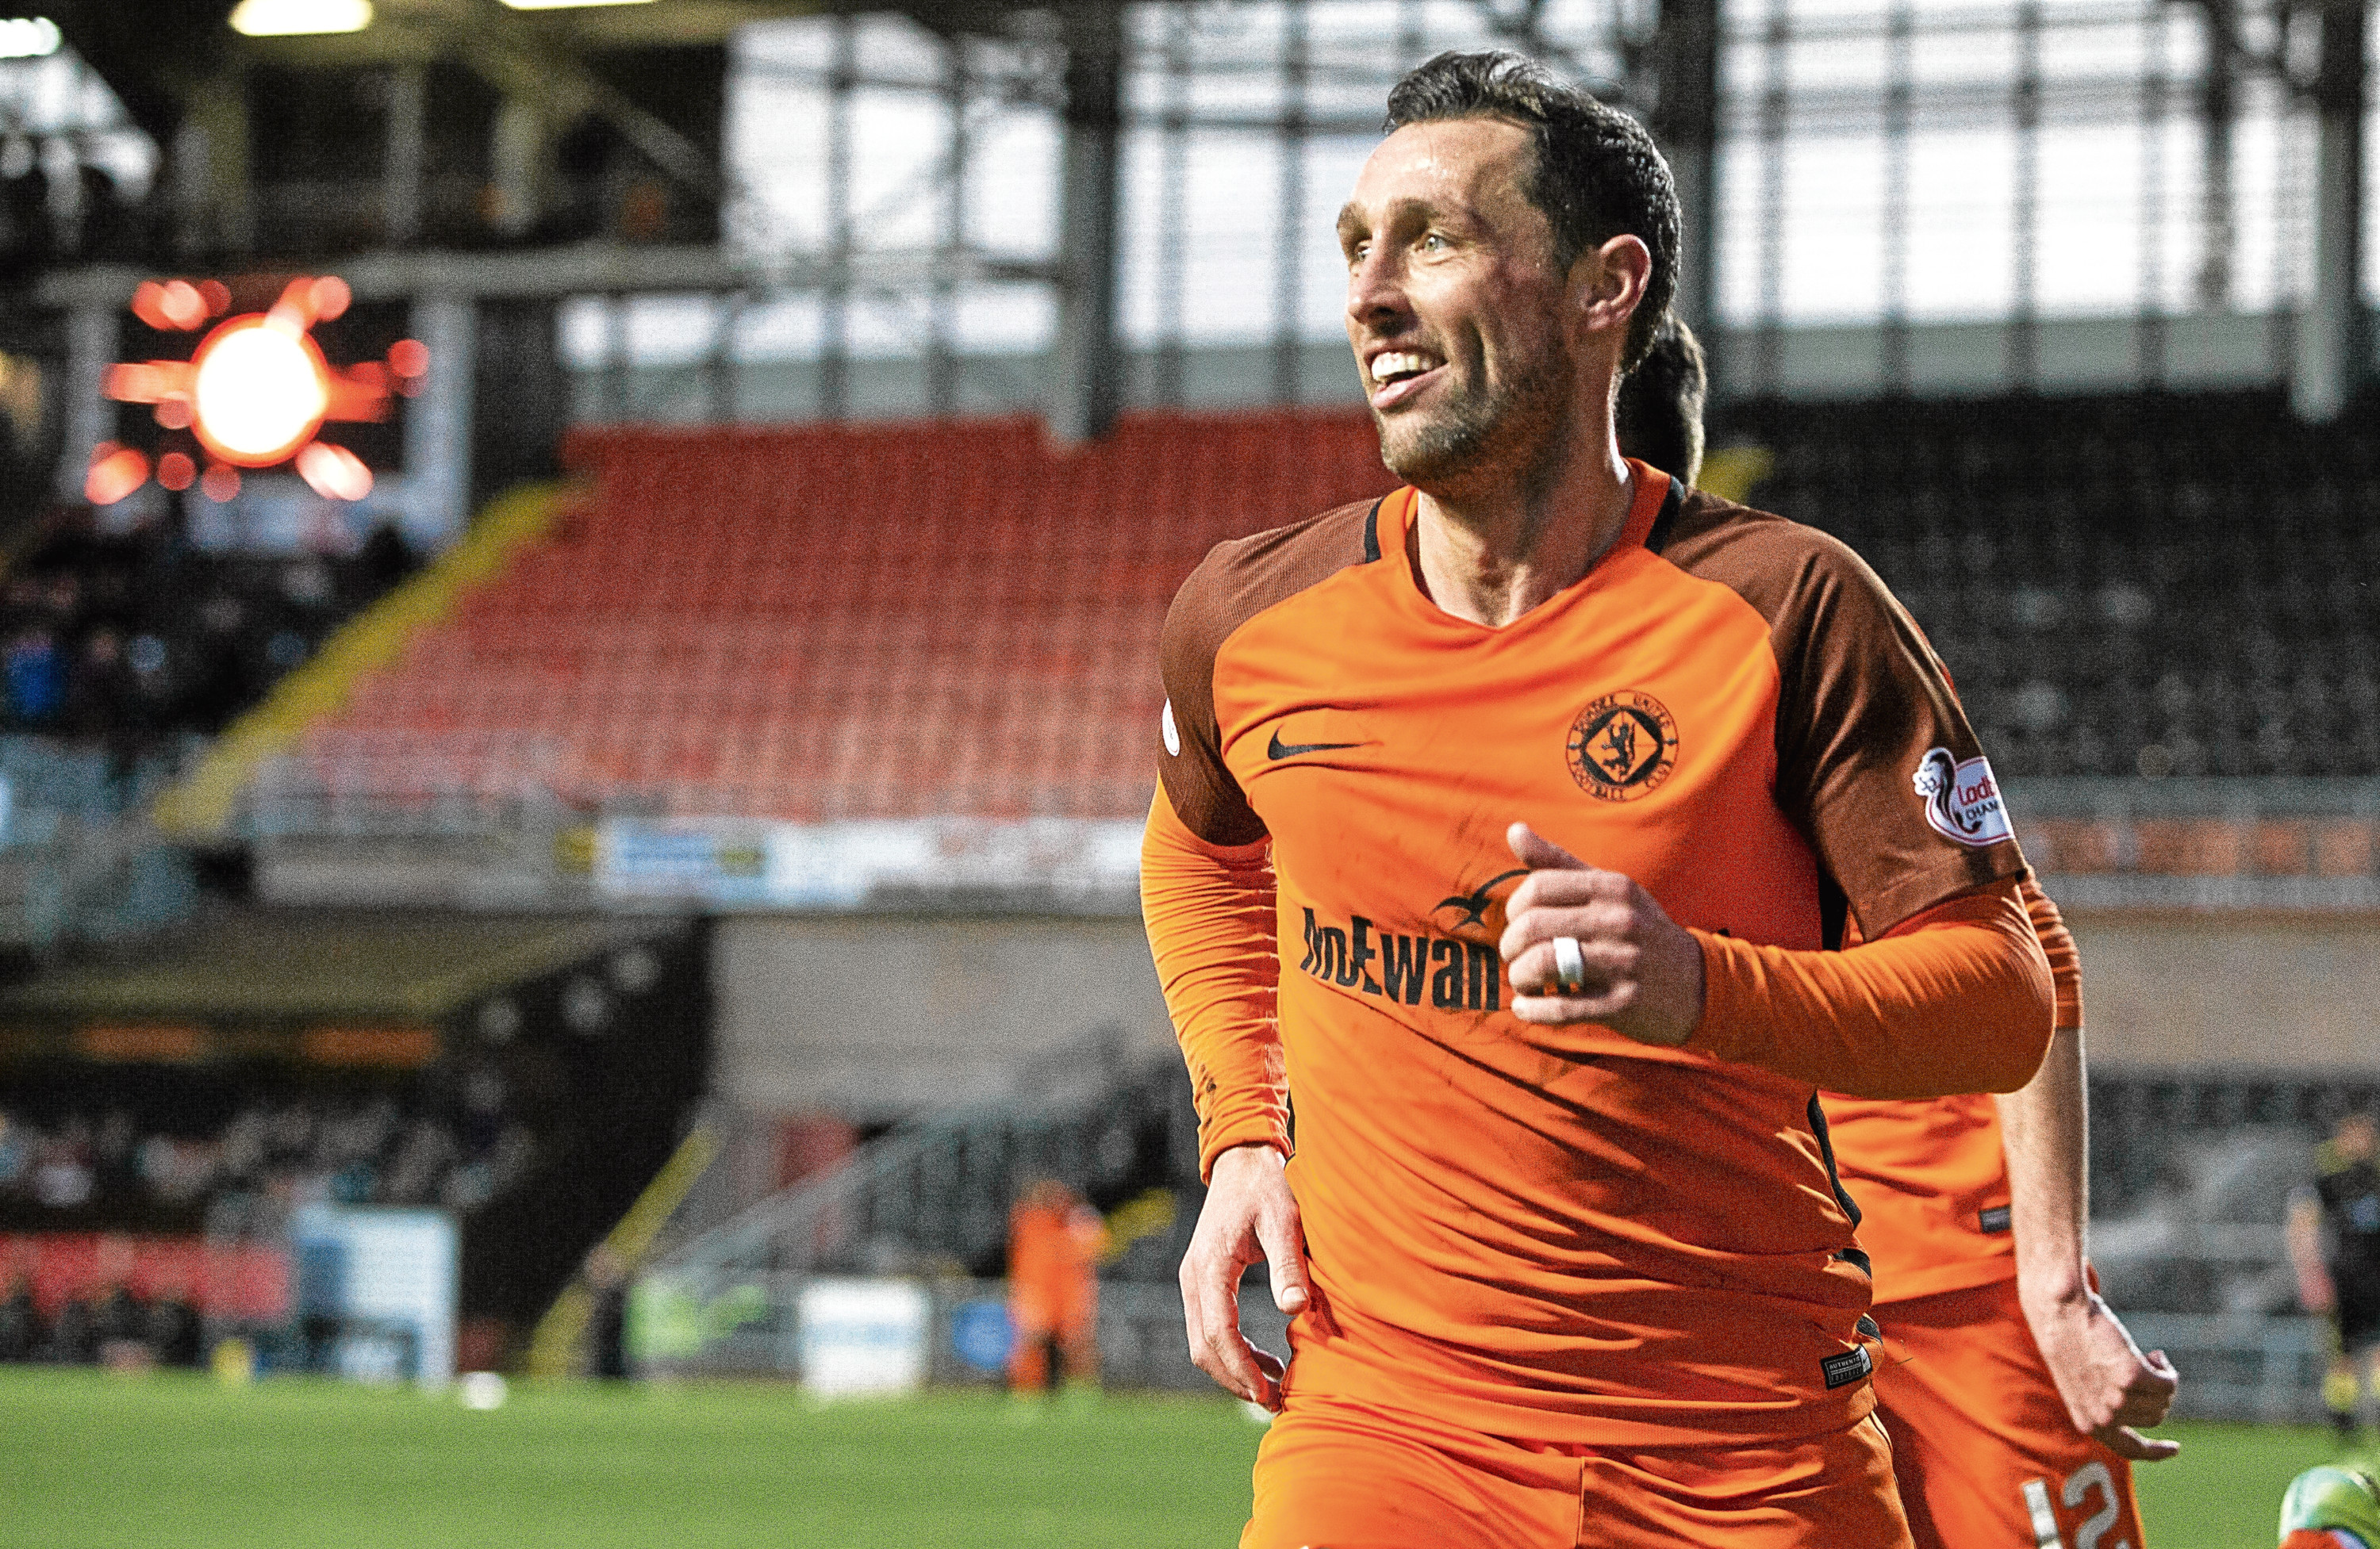 Aussie striker Scott McDonald will leave the club